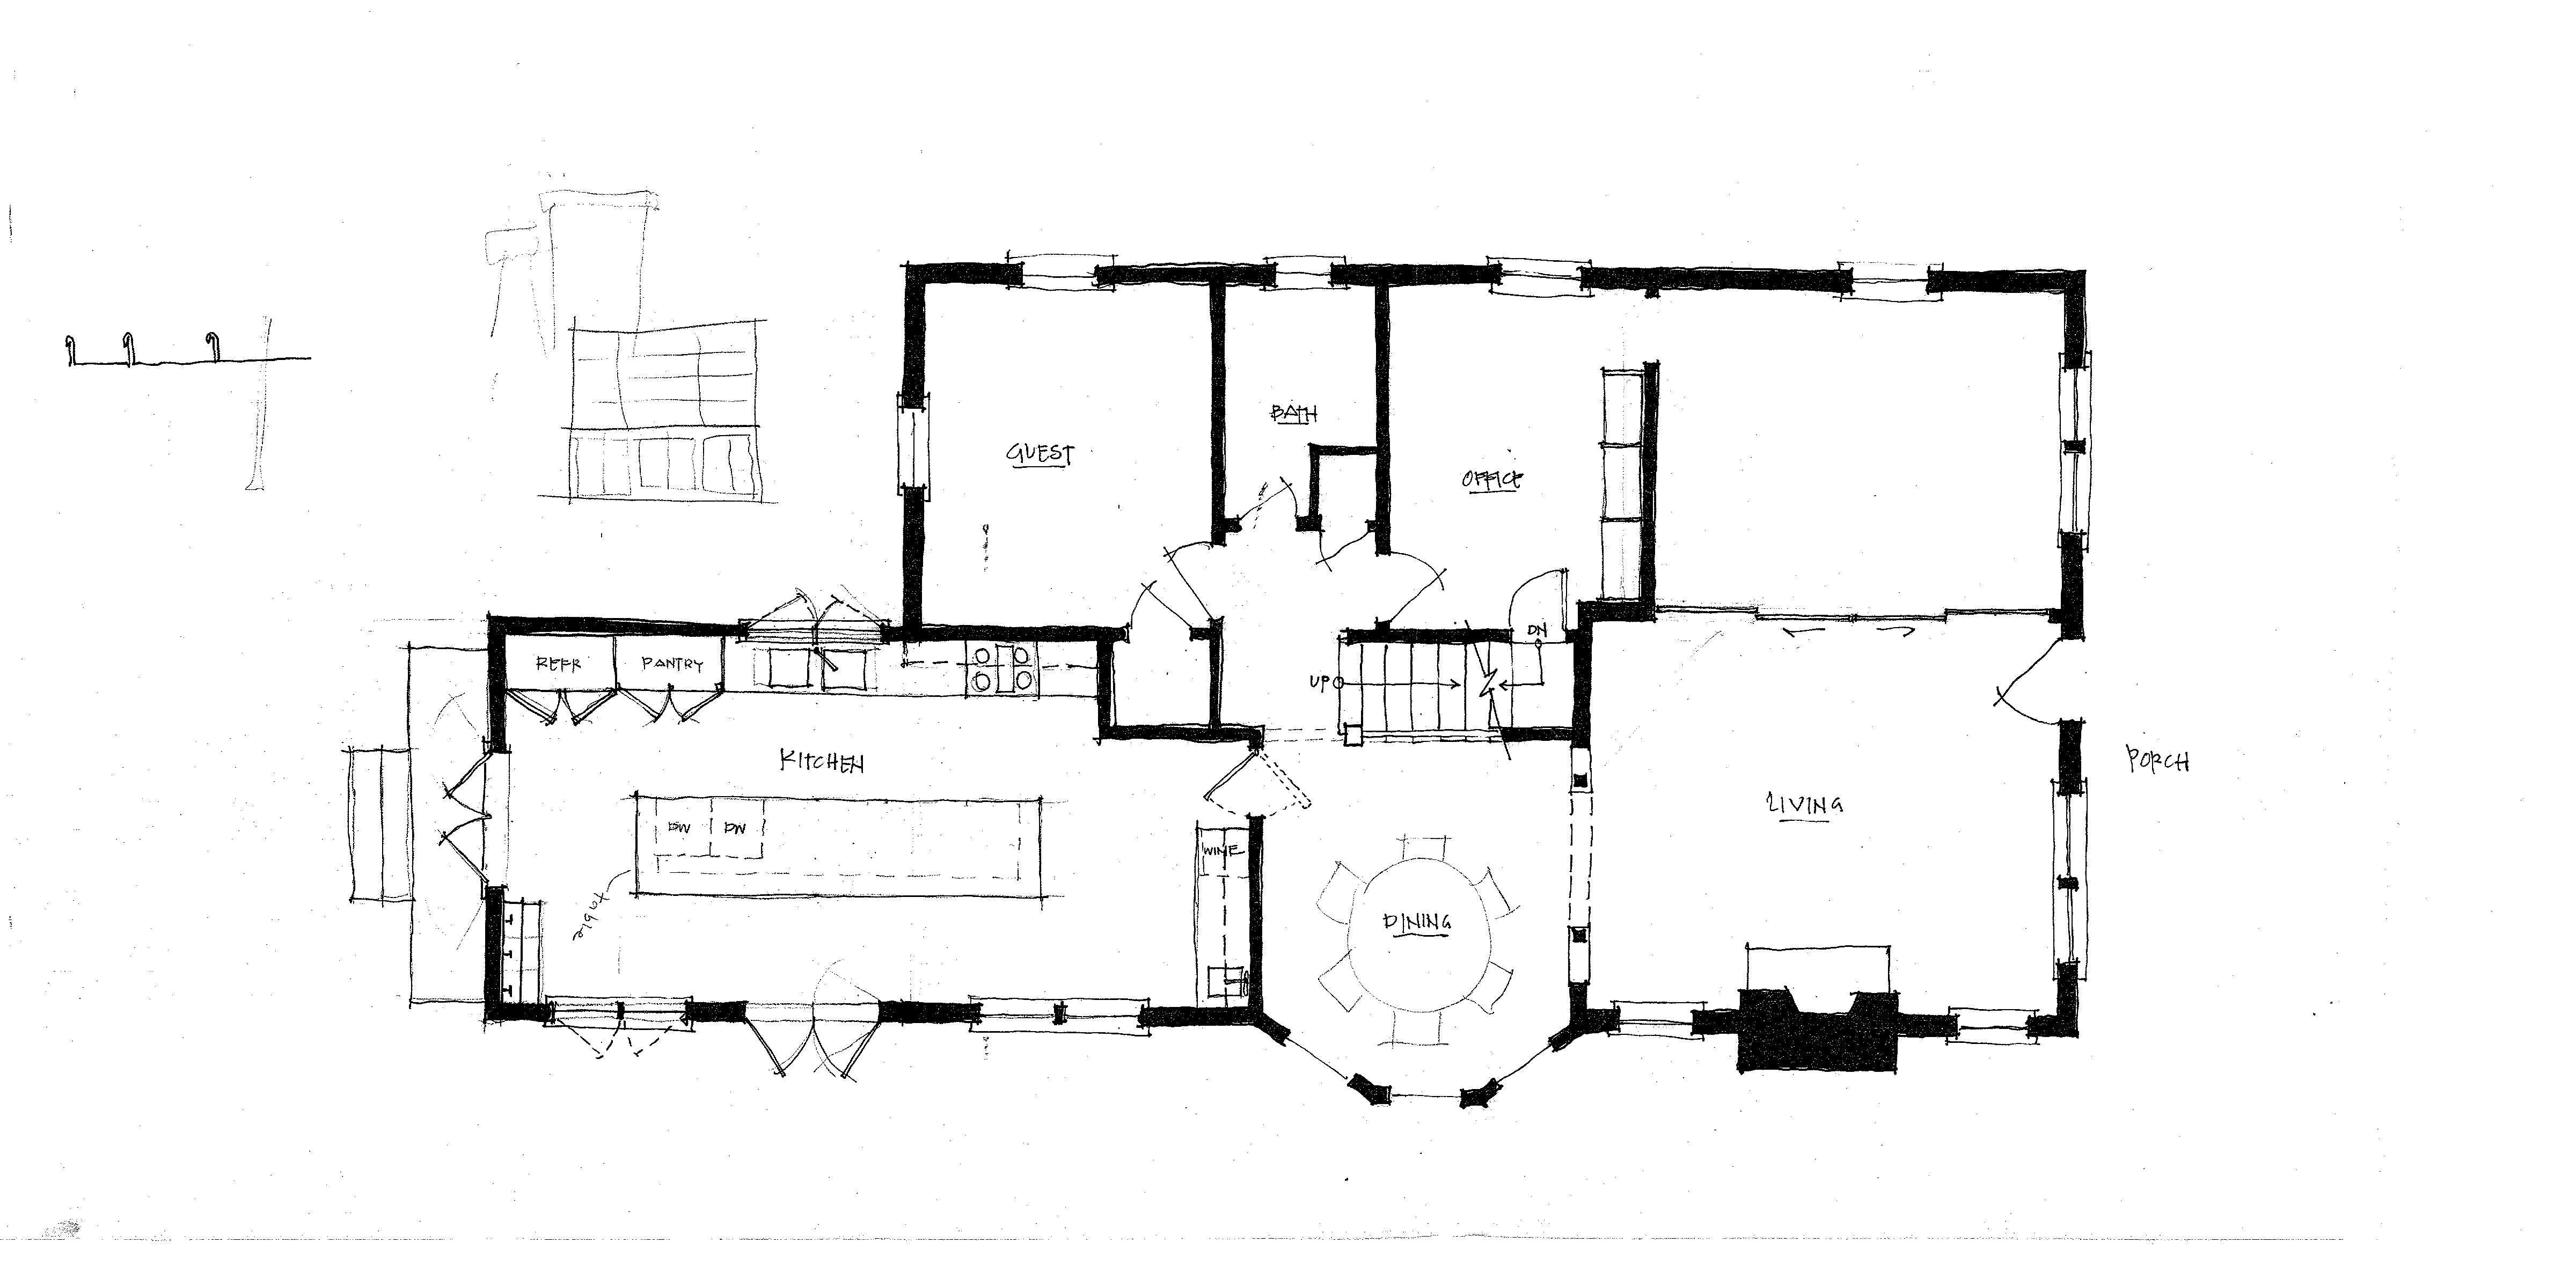 grey\'s anatomy house plan - Google-søgning | Rosales Casa ...